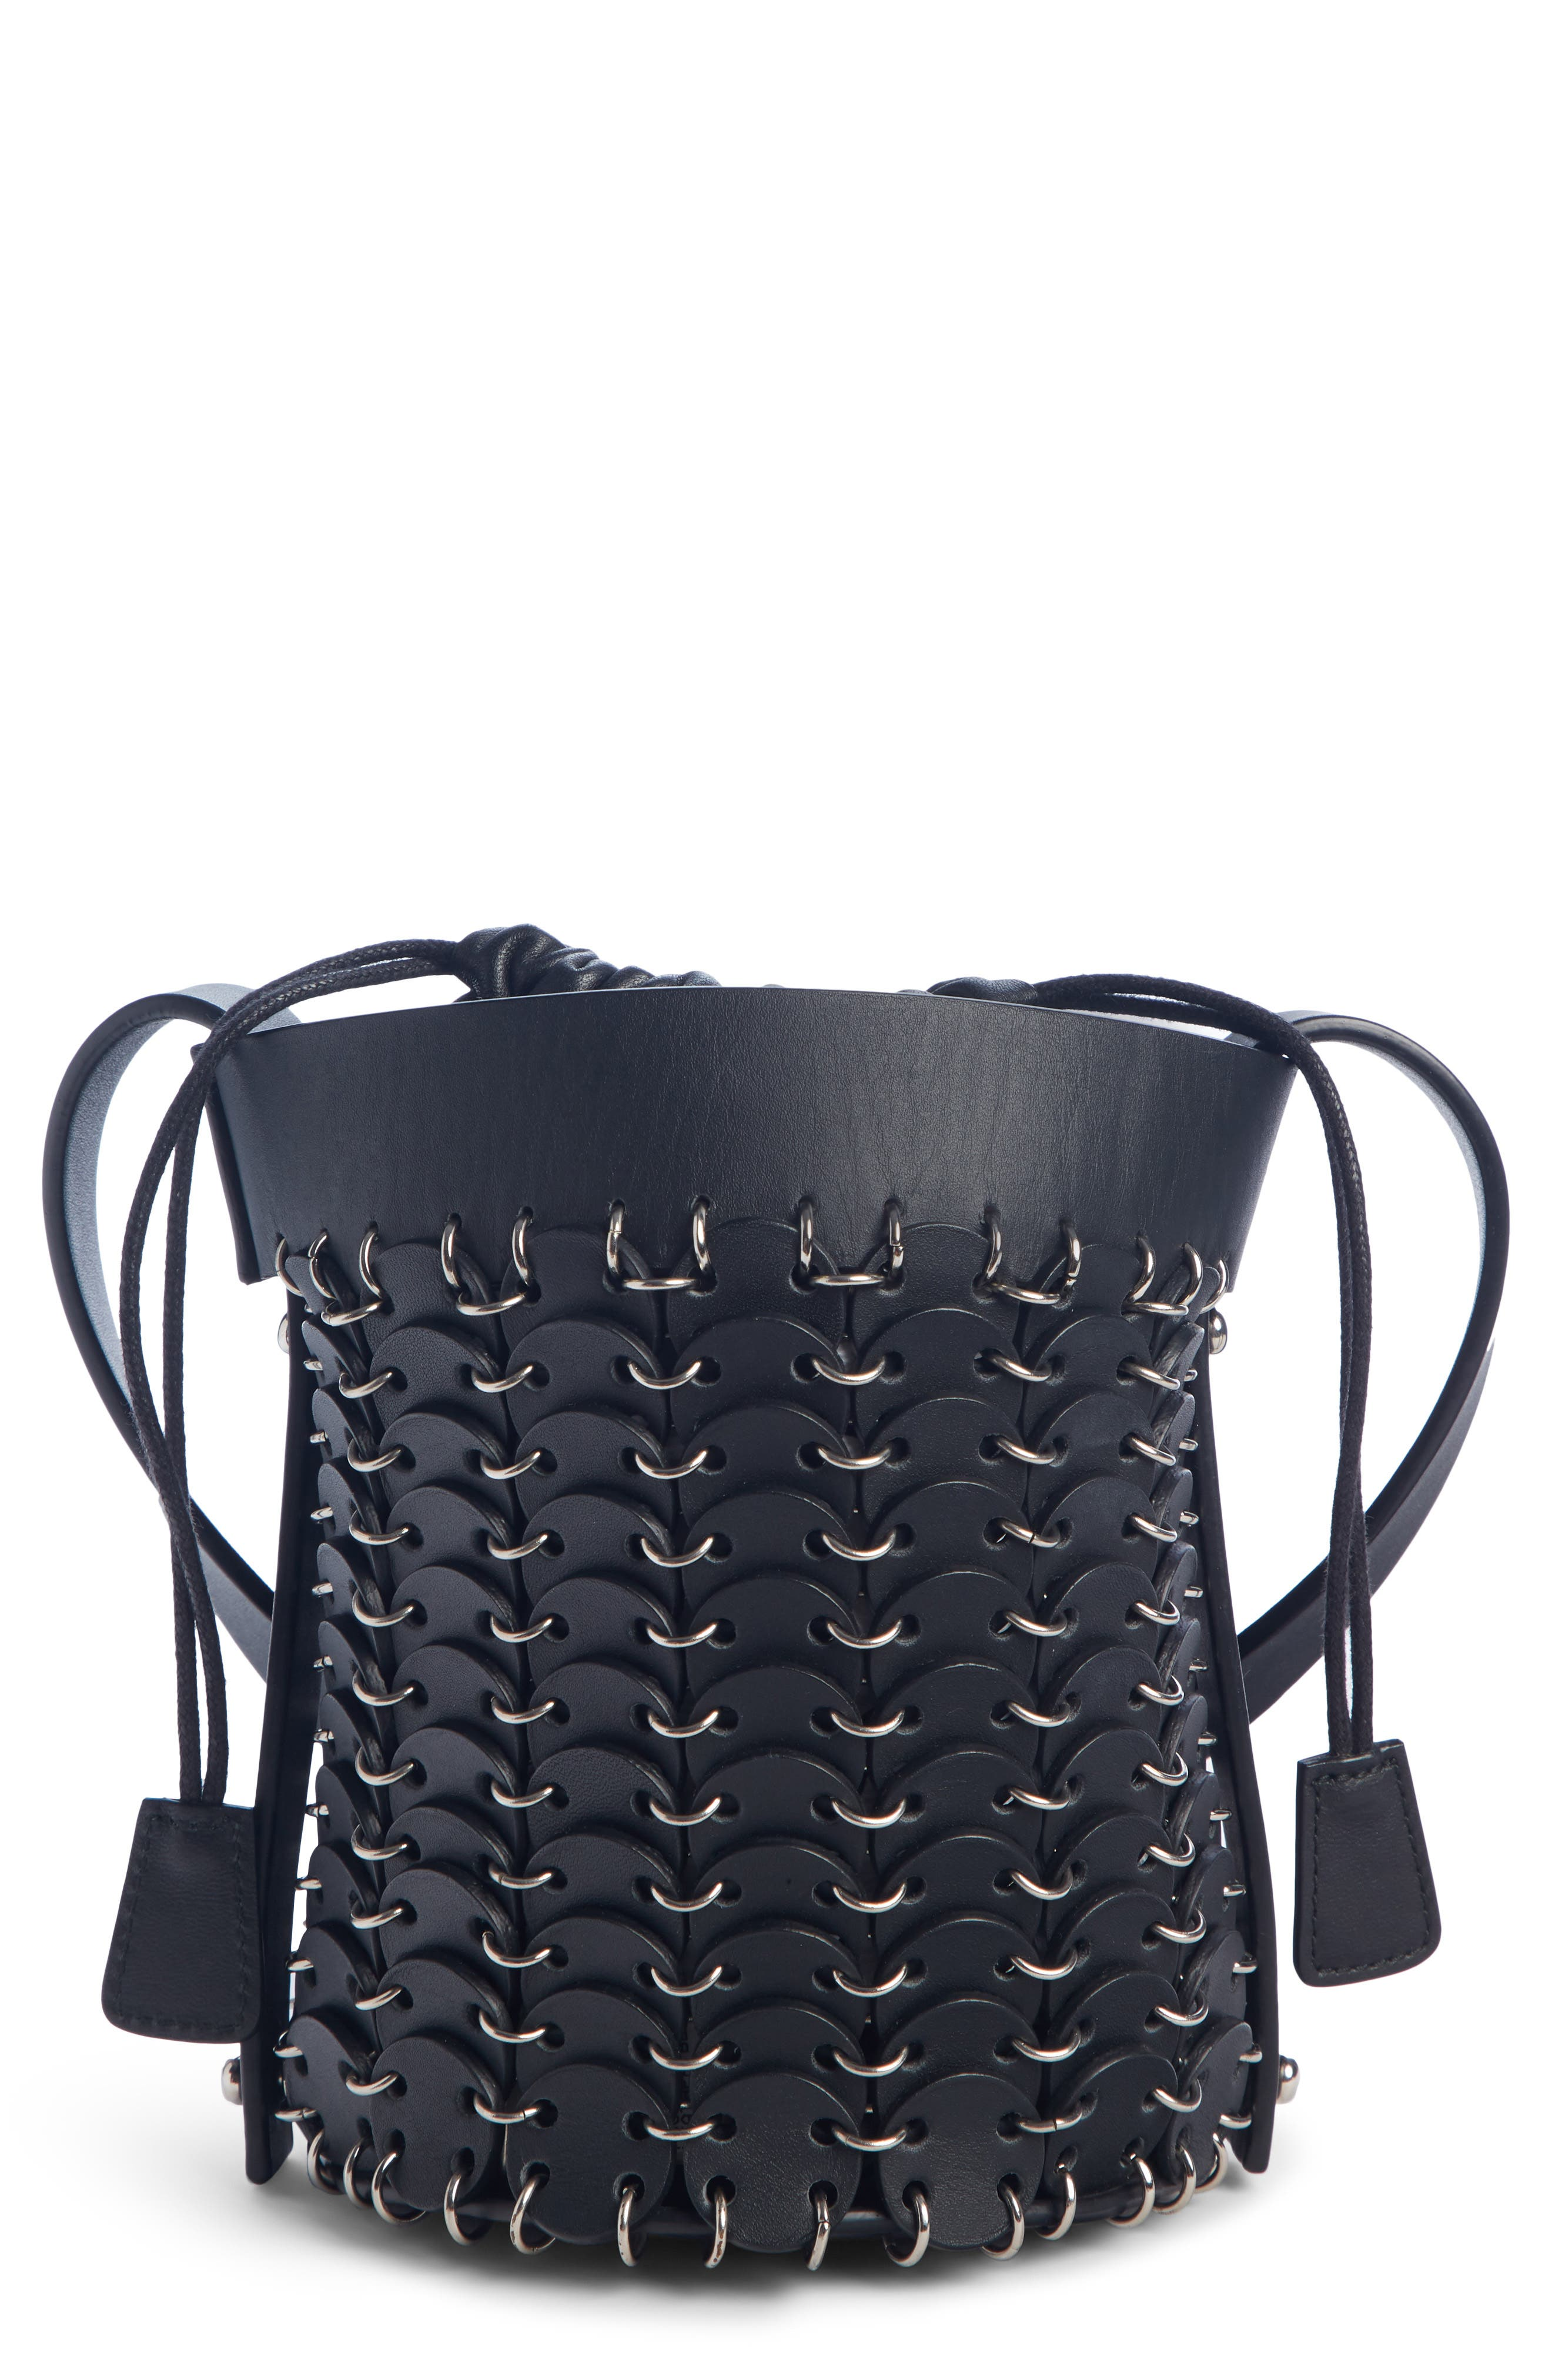 PACO RABANNE Mini Calfskin Bucket Bag, Main, color, BLACK